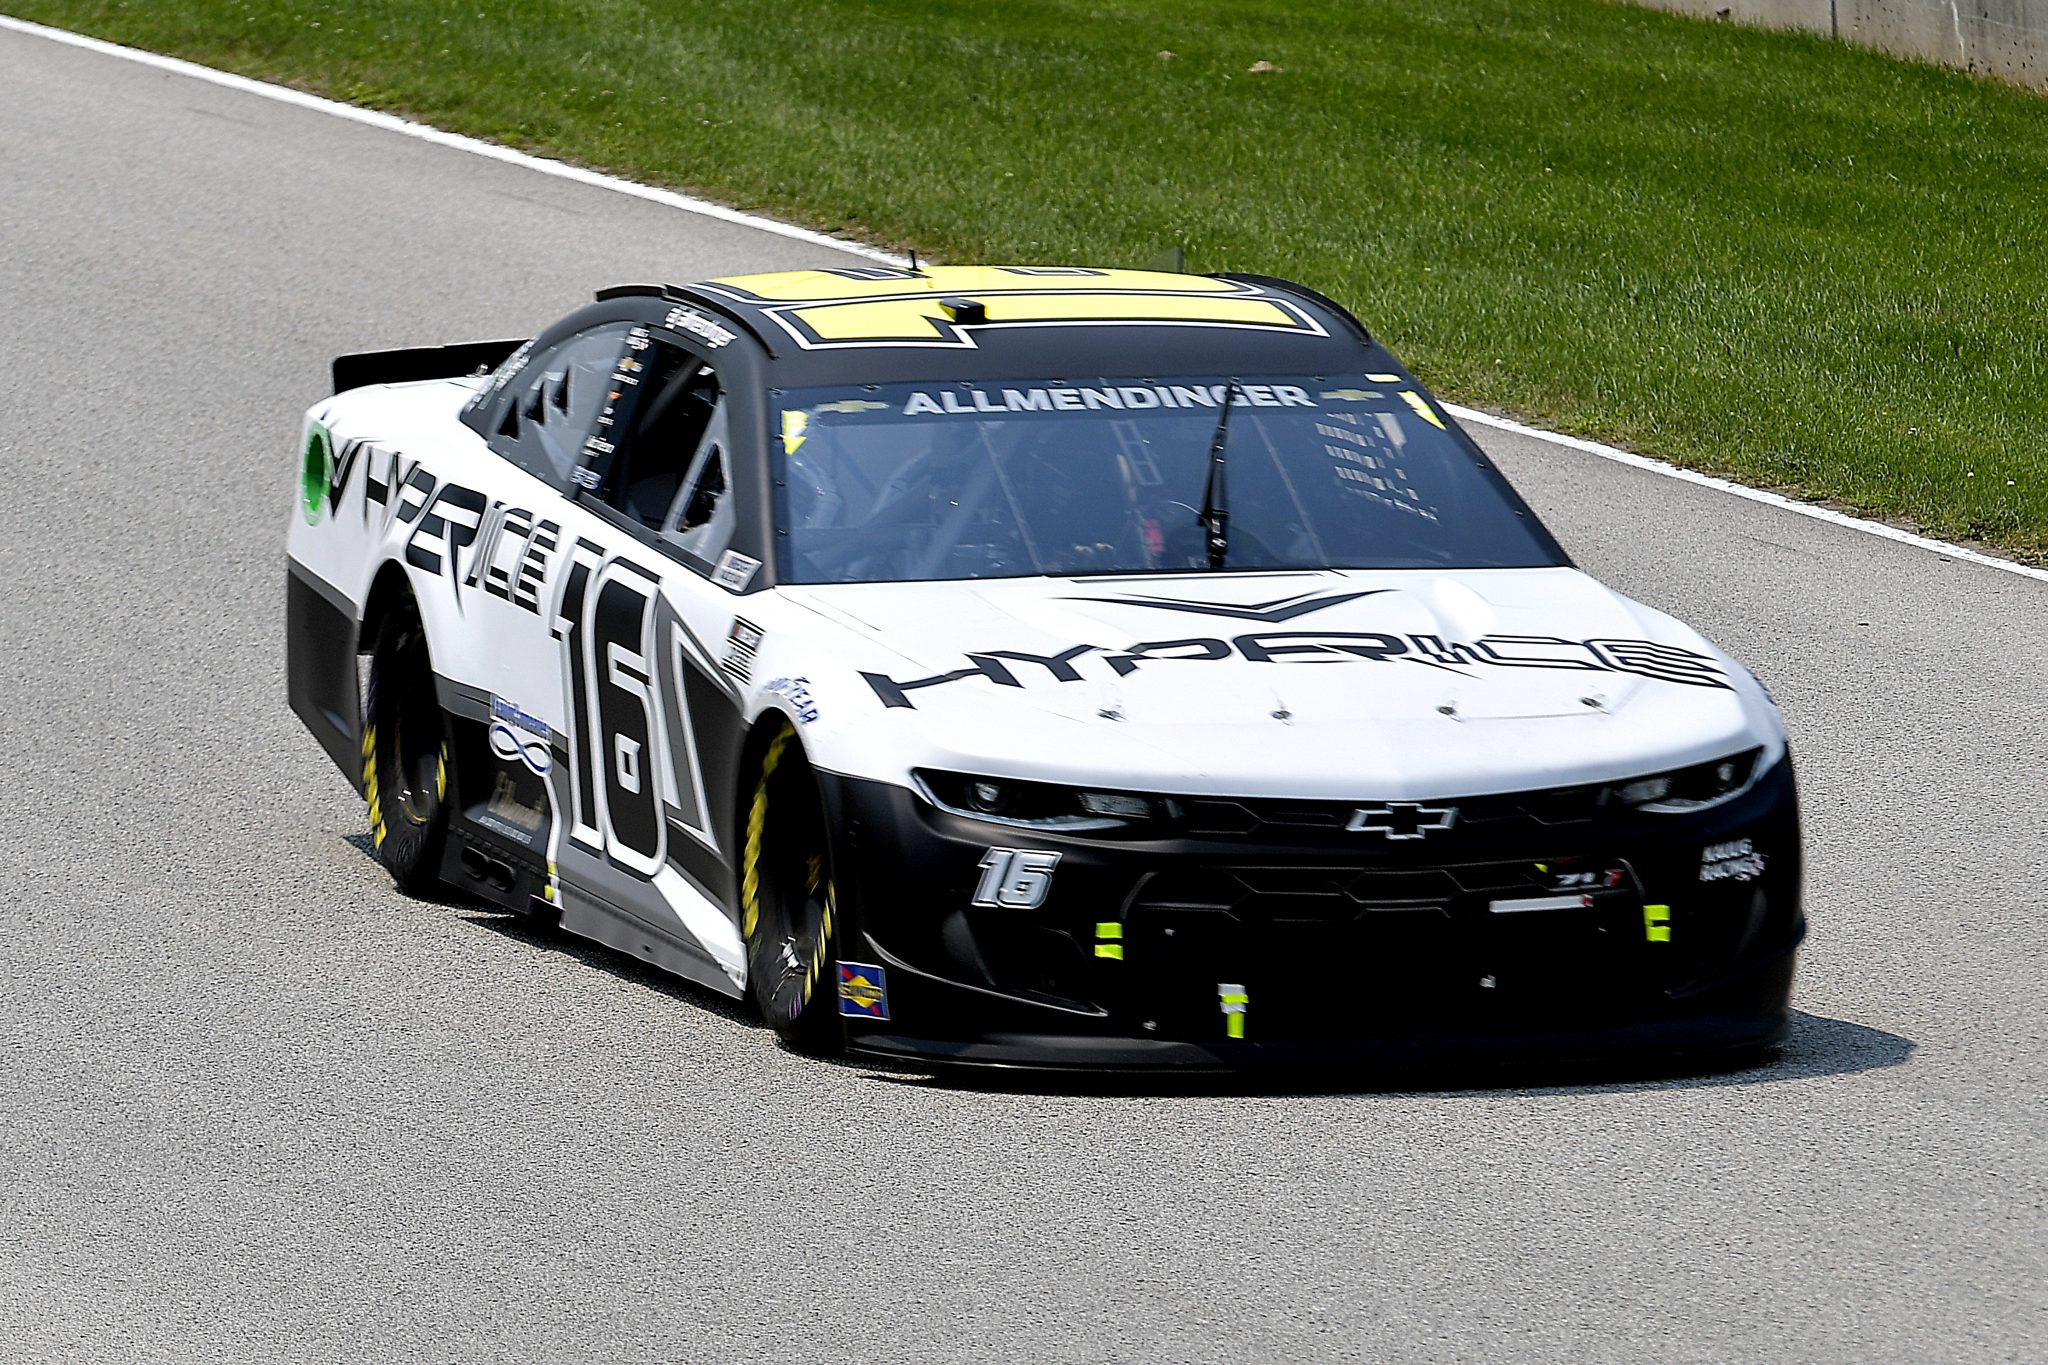 ELKHART LAKE, WISCONSIN - JULY 03: AJ Allmendinger, driver of the #16 Hyperice Chevrolet, drives during practice for the NASCAR Cup Series Jockey Made in America 250 Presented by Kwik Trip at Road America on July 03, 2021 in Elkhart Lake, Wisconsin. (Photo by Logan Riely/Getty Images)   Getty Images